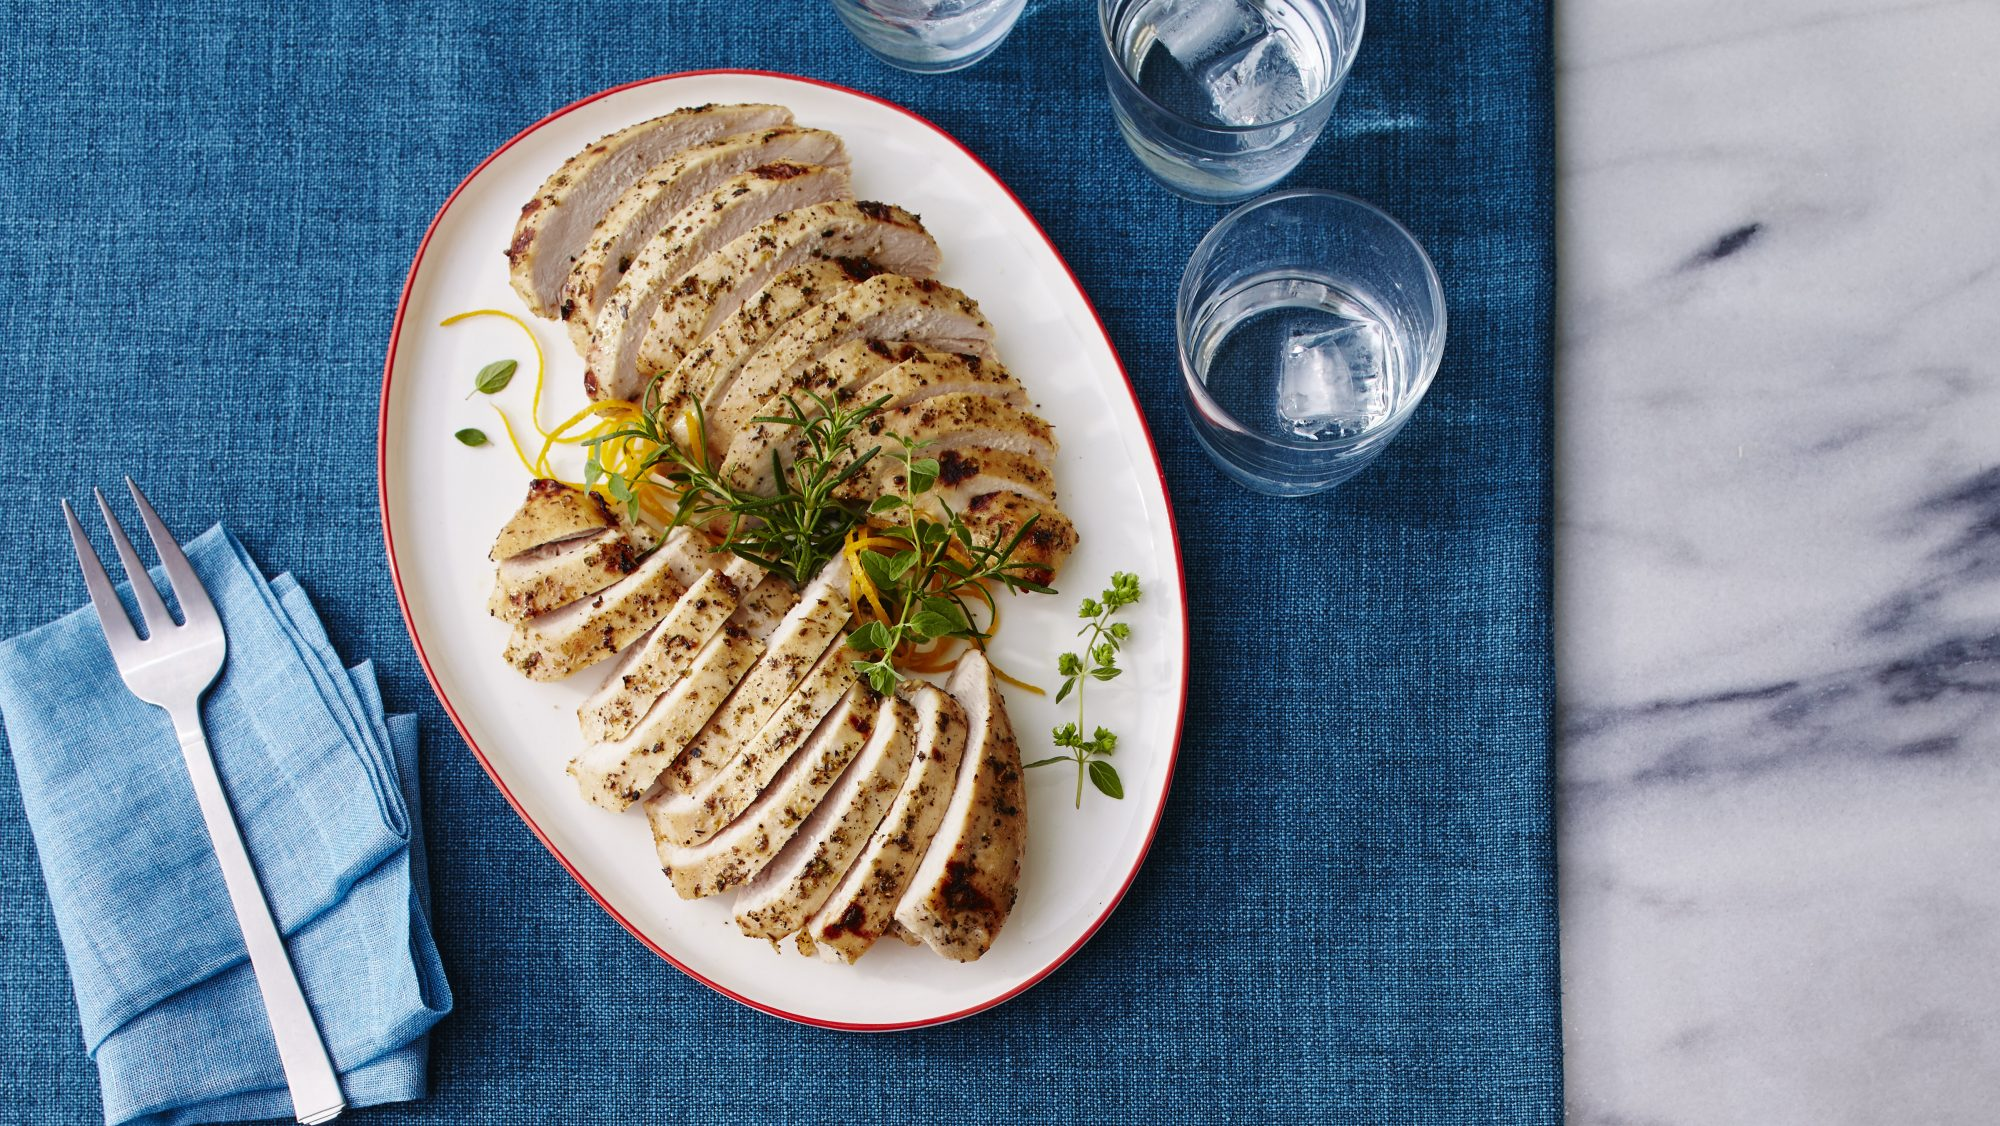 Remarkable, Cooking a marinated turkey breast